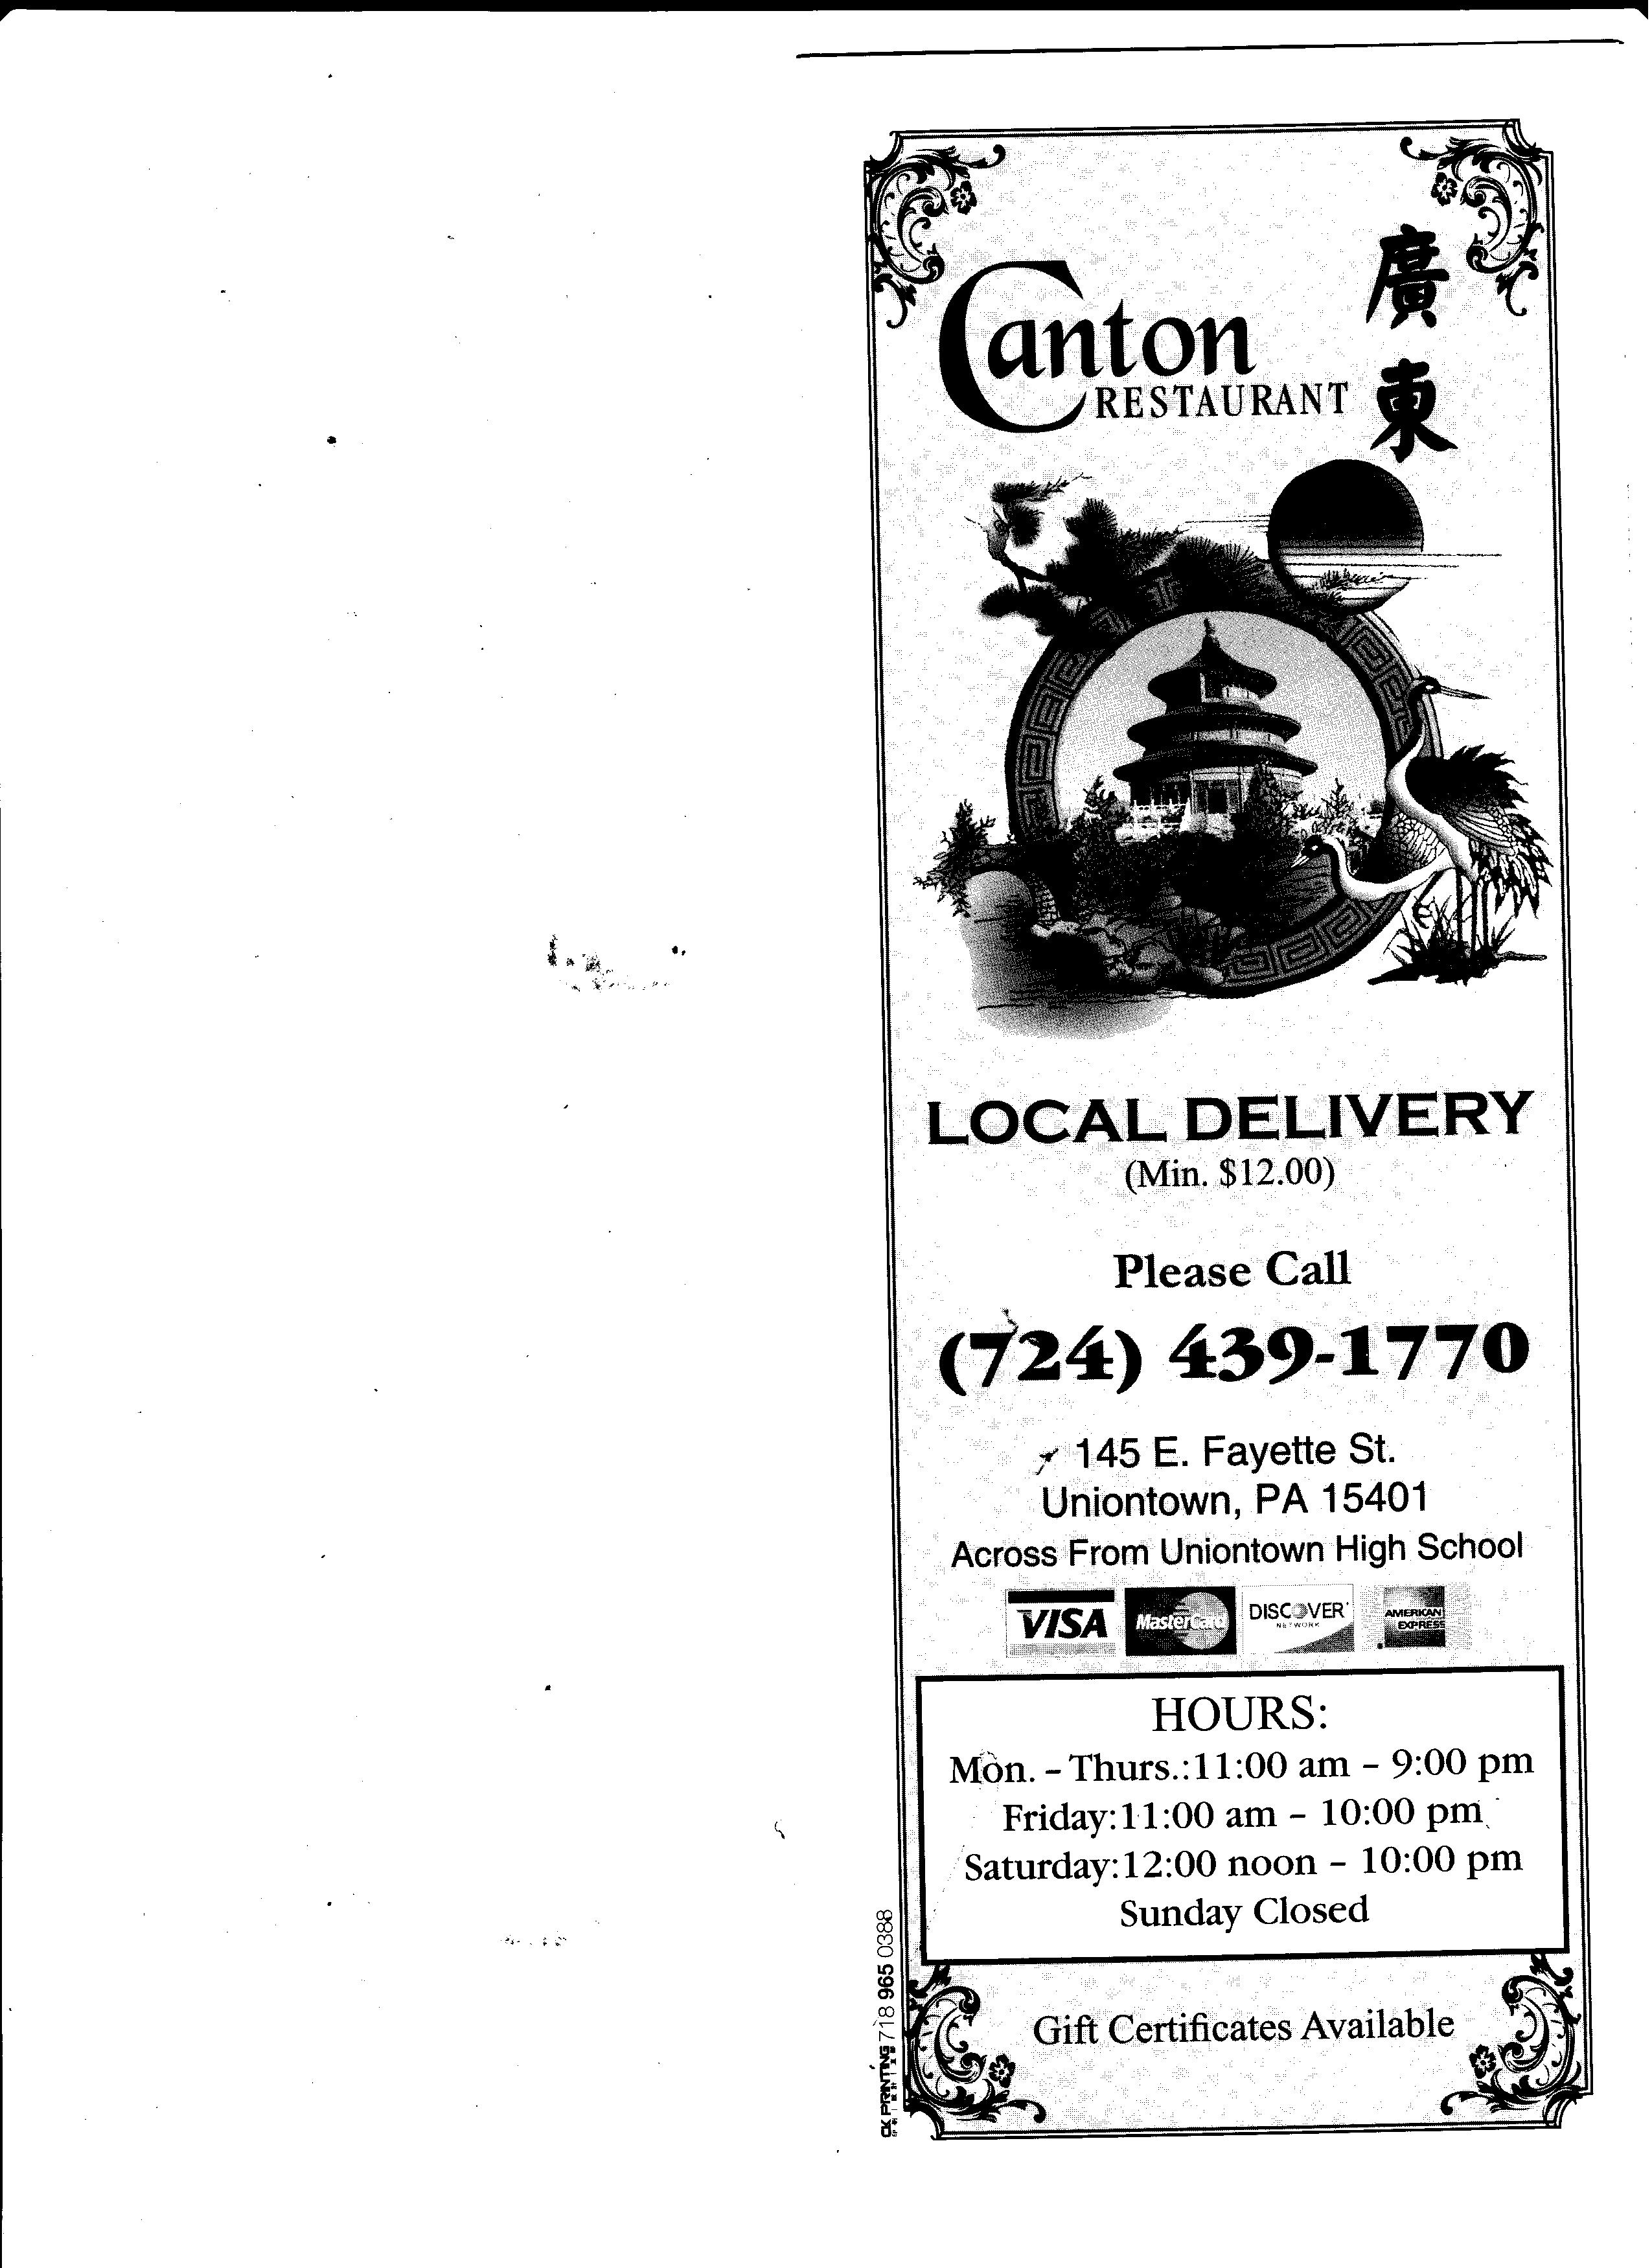 Canton Chinese Restaurant, Uniontown PA